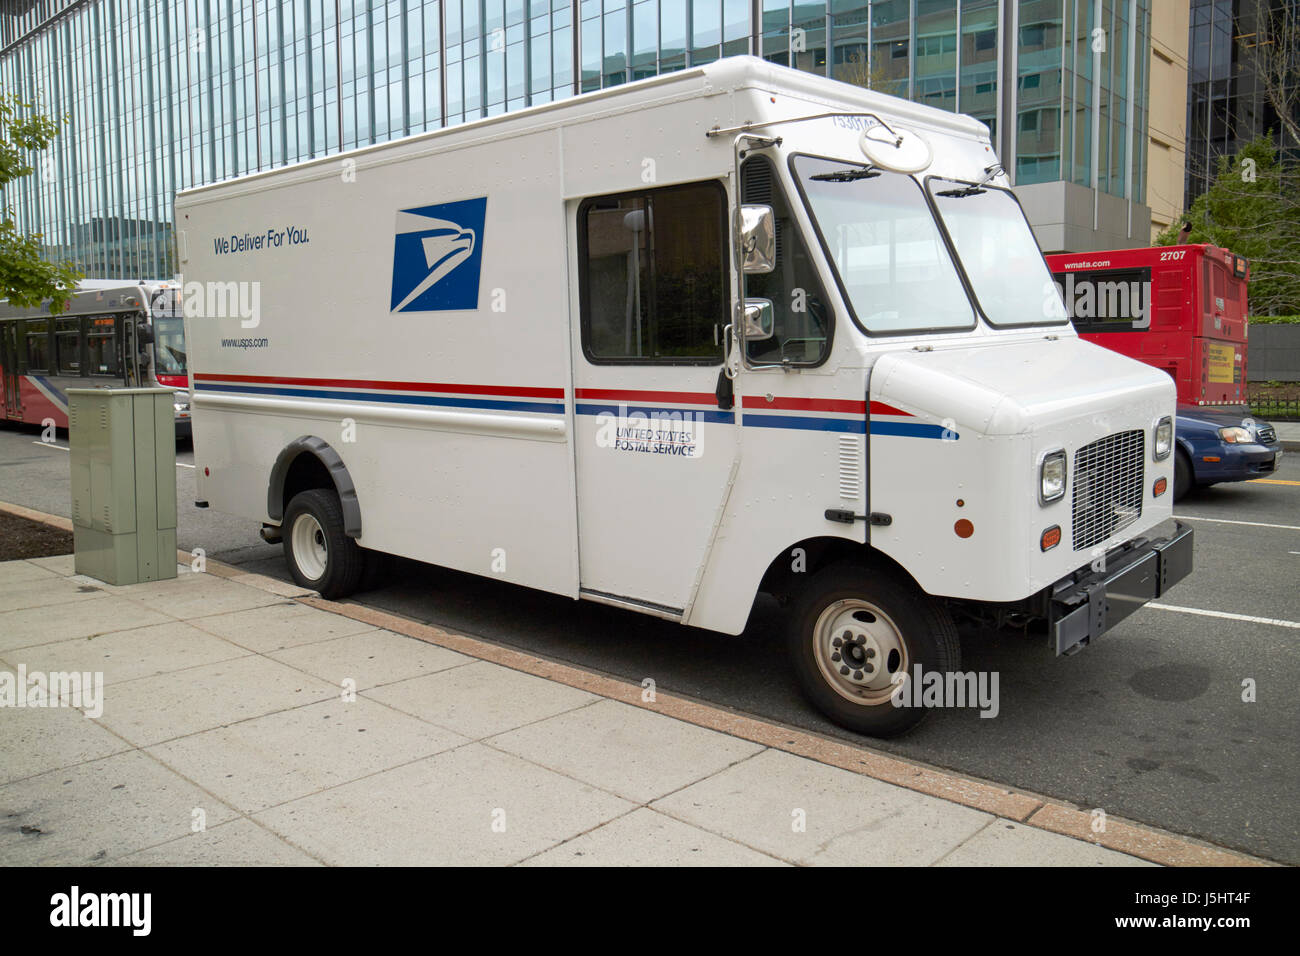 the united states postal service is an example of brainly